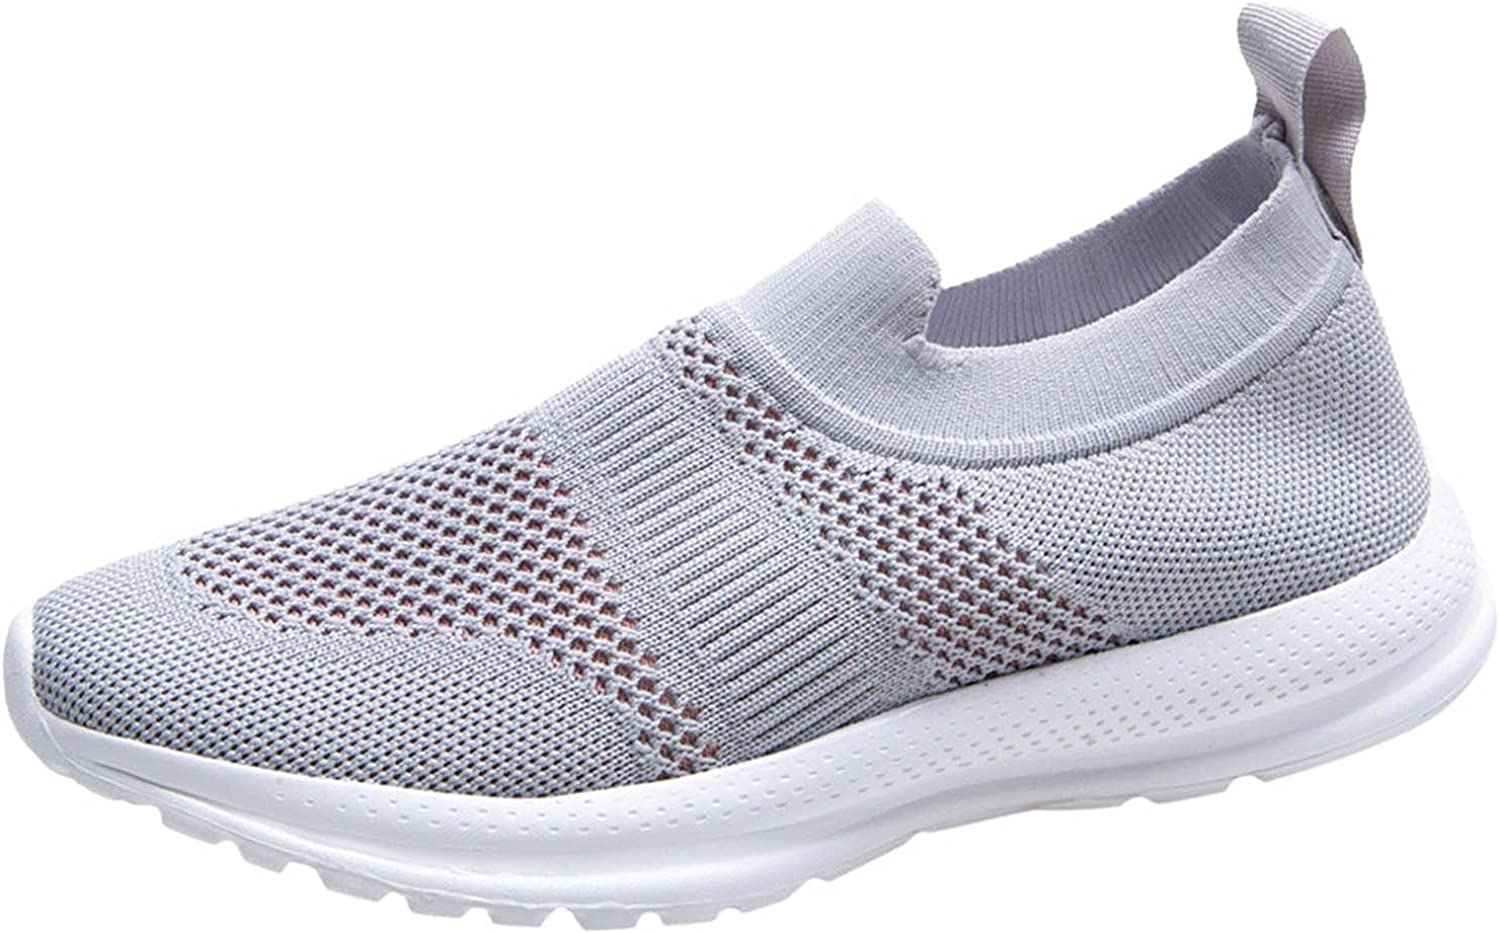 Johtae Colorado Springs Mall Walking Shoes Excellence for Women Slip Women's On Casual Sneaker Ho